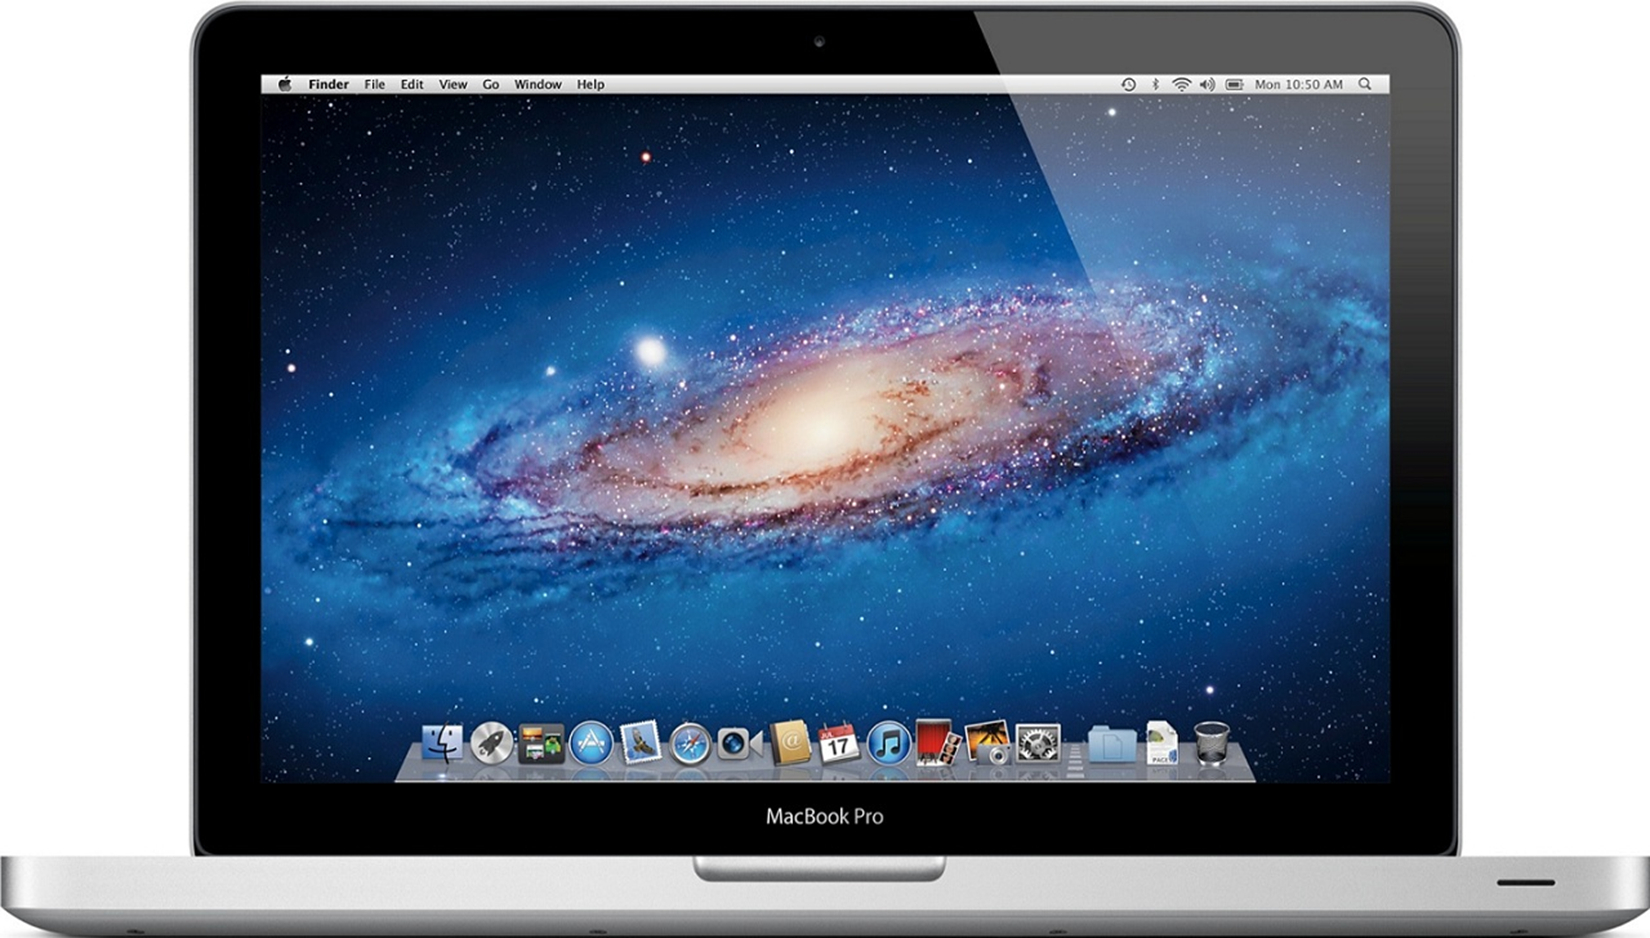 Apple MacBook Pro 17 (High-Res Glossy) 2.2 GHz Intel Core i7 4 GB RAM 750 GB HDD (5400 U/Min.) [Early 2011]